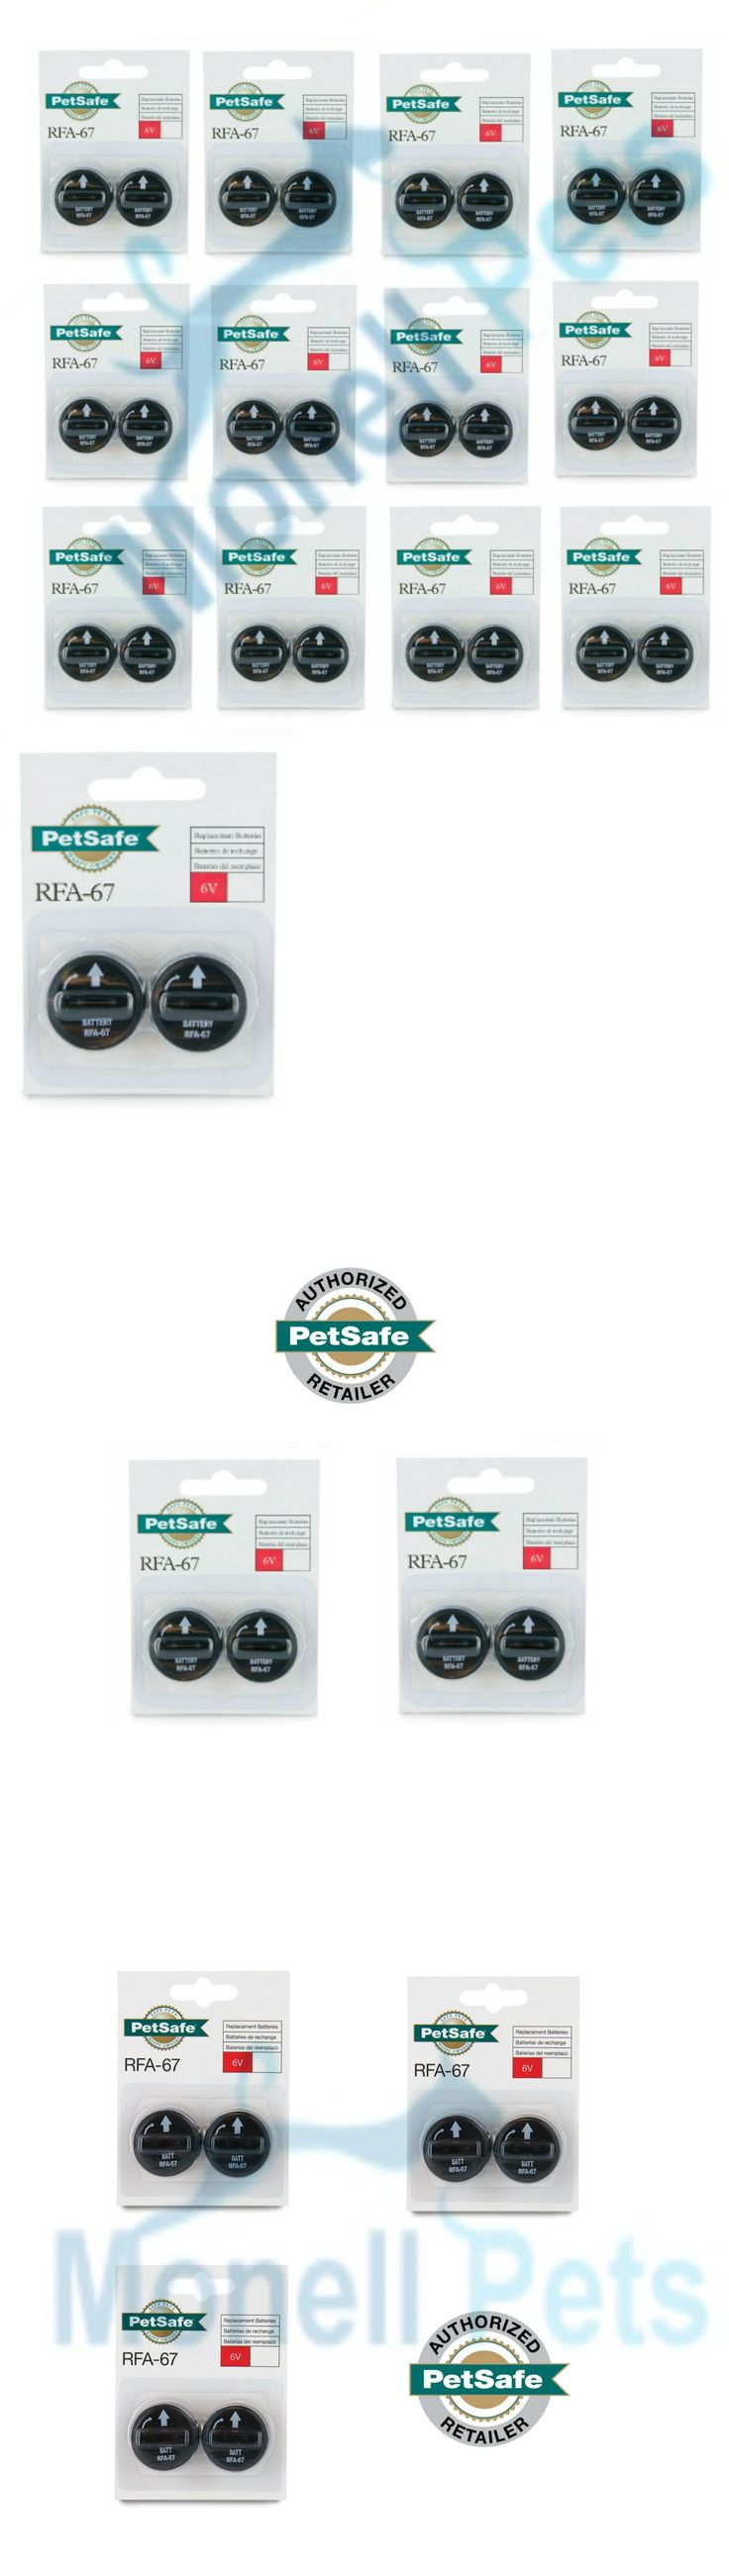 Other Dog Training and Obedience 146245: Petsafe Rfa-67D-11 Batteries For Wireless And In-Ground Dog Fence Collars Rfa-67 -> BUY IT NOW ONLY: $33.75 on eBay!